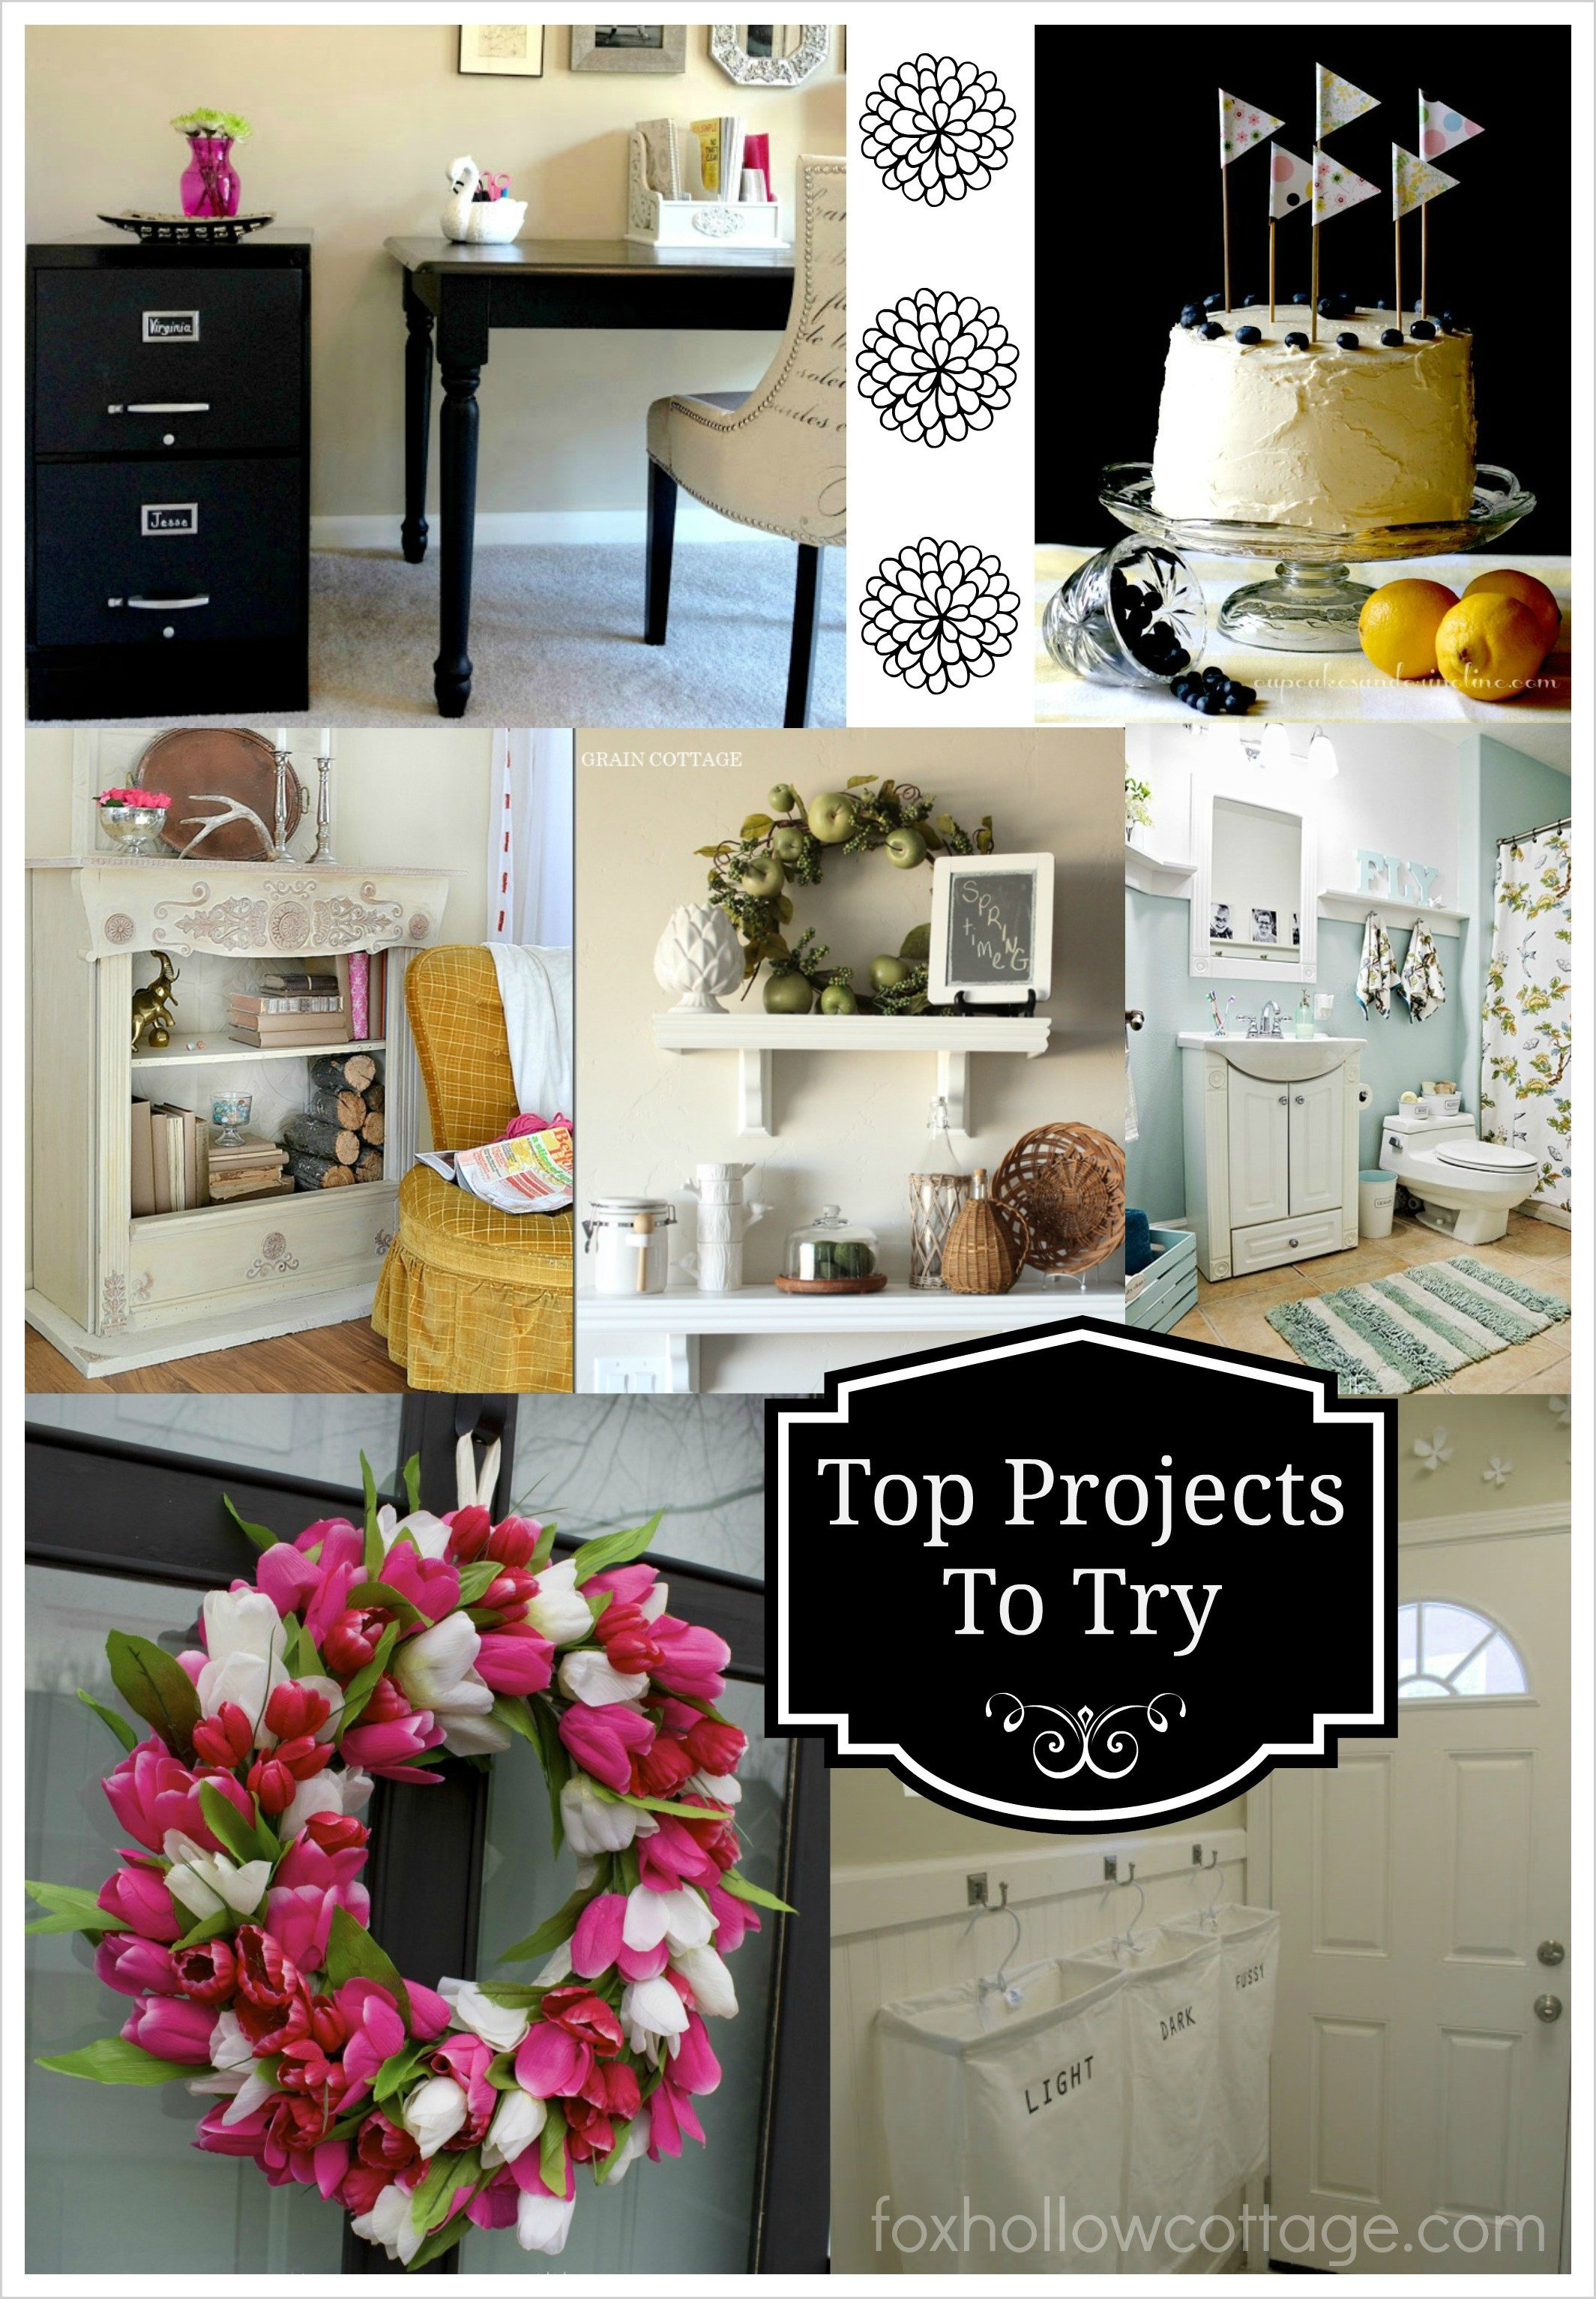 Diy Crafts for Home Decor Best Of Power Pinterest Link Party and Friday Fav Features